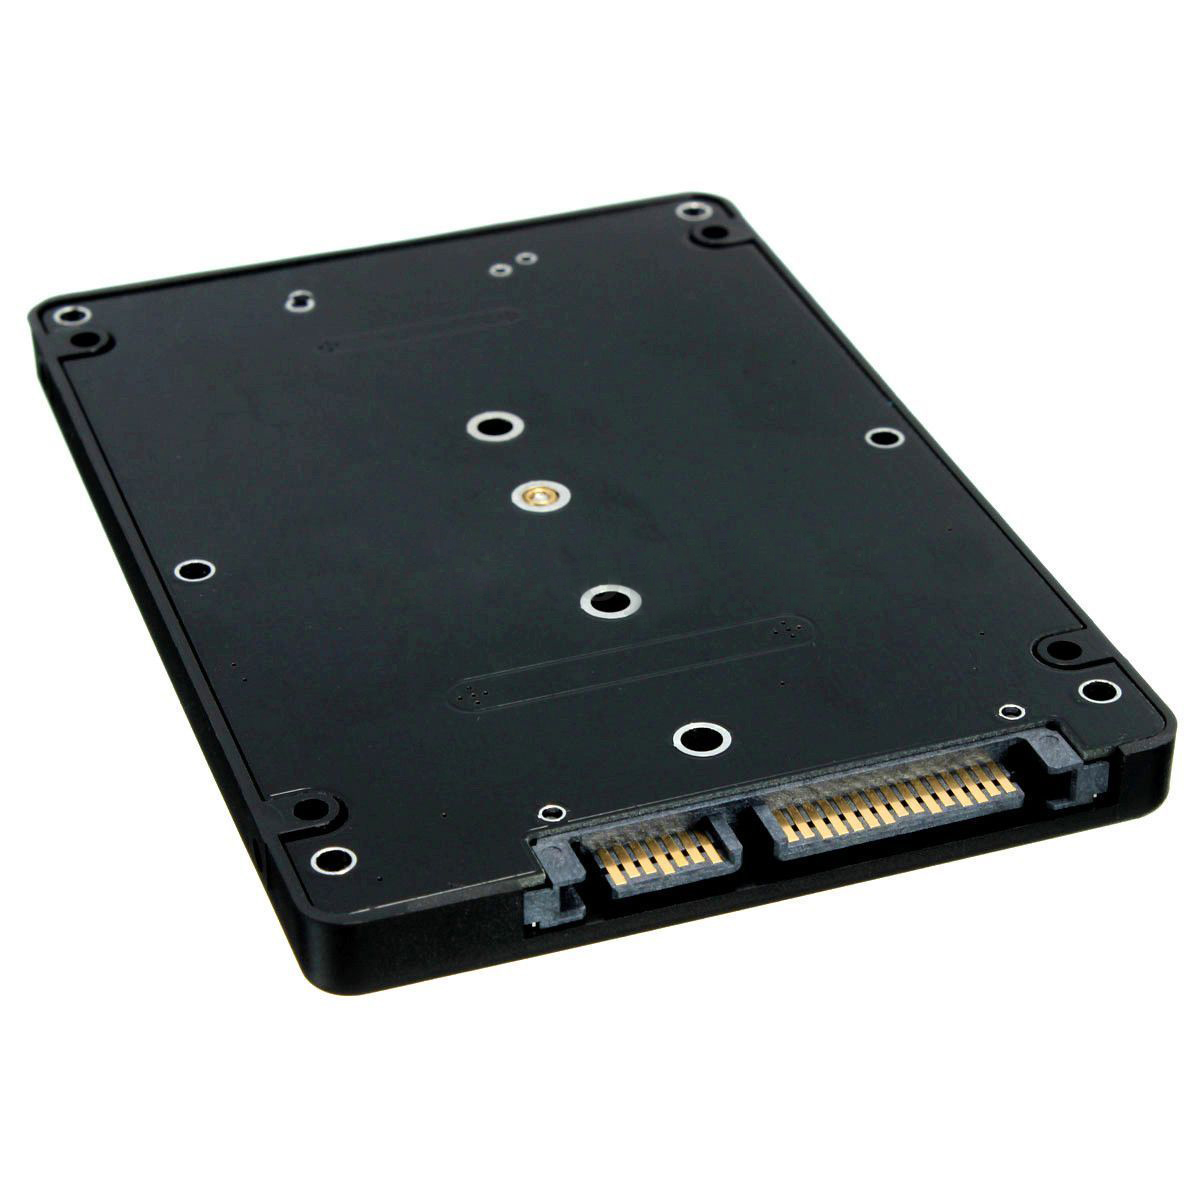 M.2 NGFF (SATA) SSD To 2.5 Inch SATA Adapter Card 8mm Thickness Enclosure IO M.2 SATA SSD Adapter To Desktop/Notebook Computer